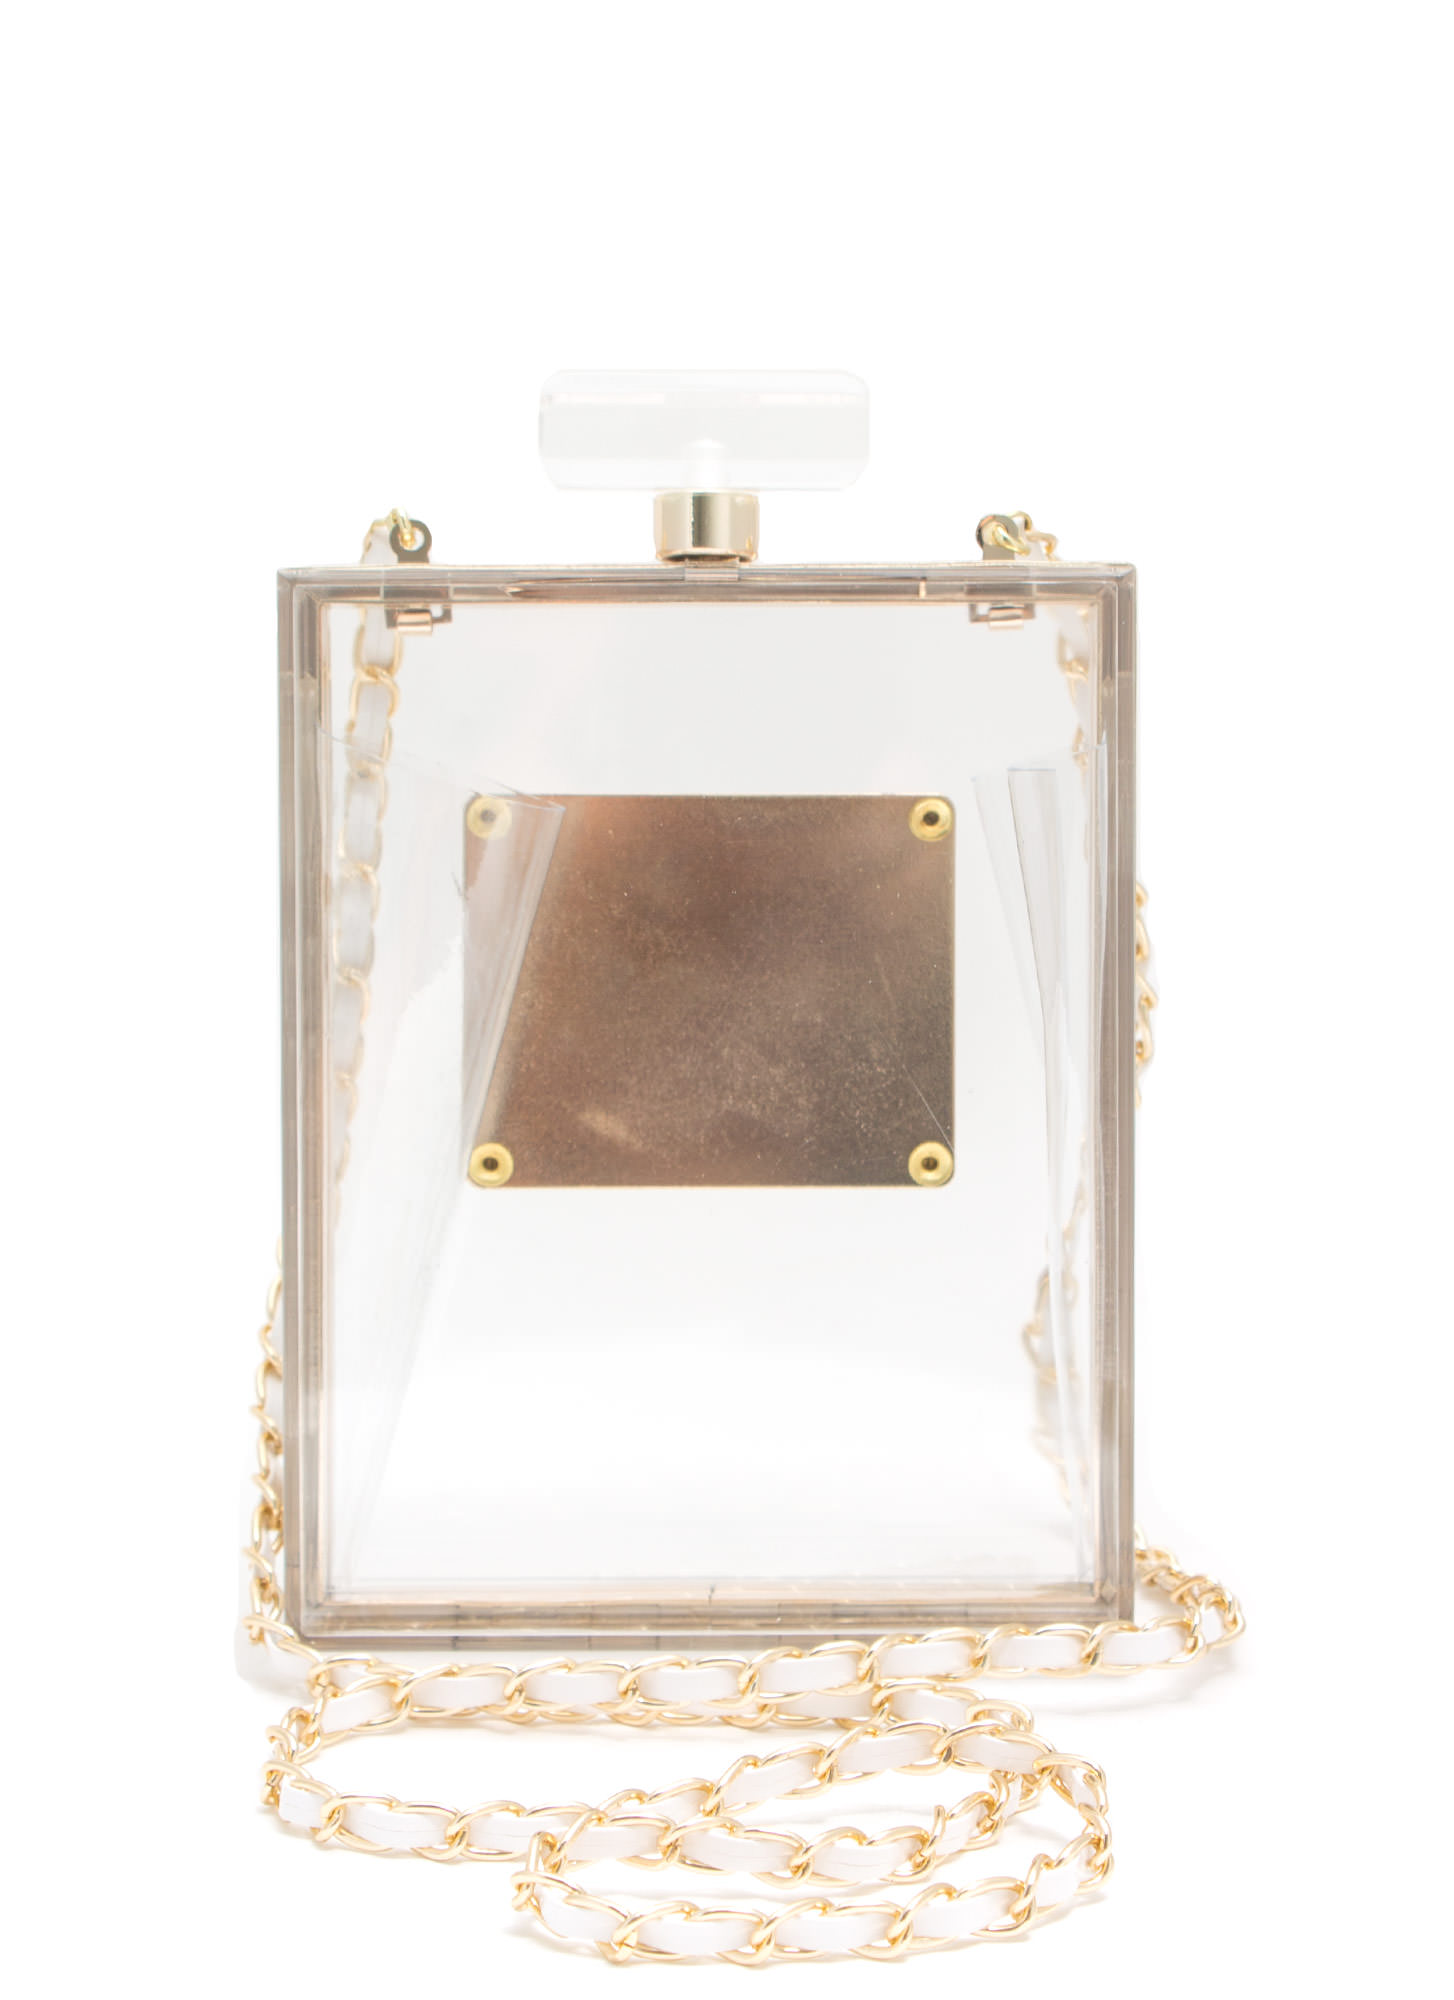 Parfum Paris Perfume Bottle Box Clutch CLEAR